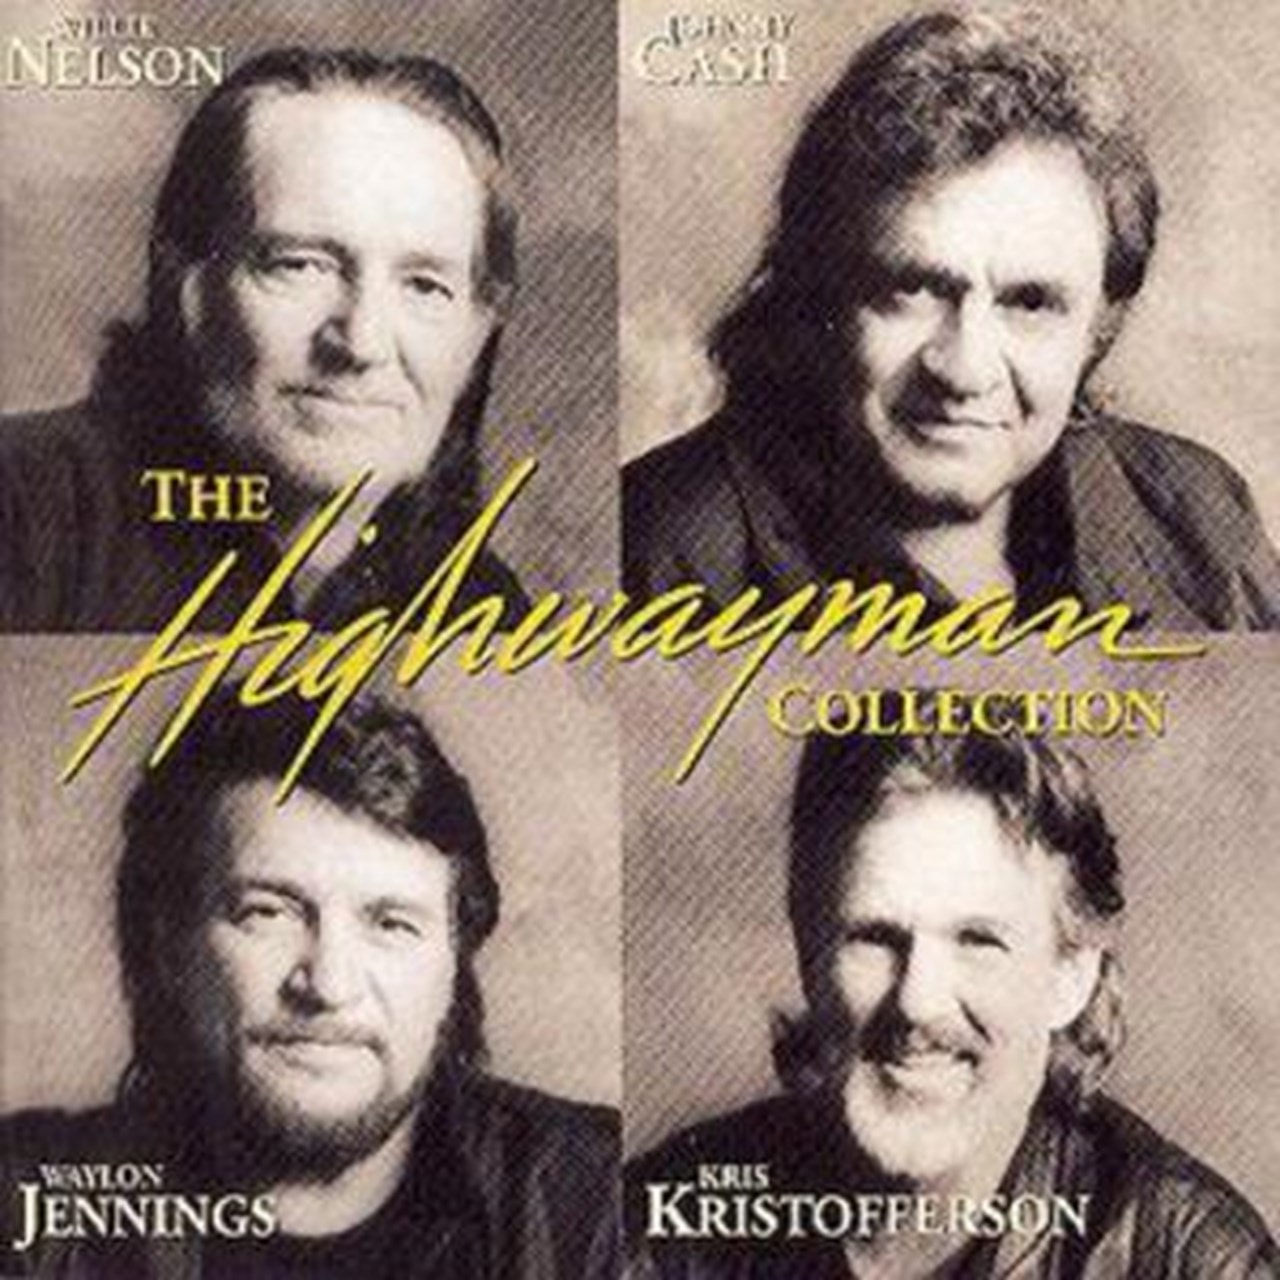 The Highwayman Collection Cd Album Free Shipping Over